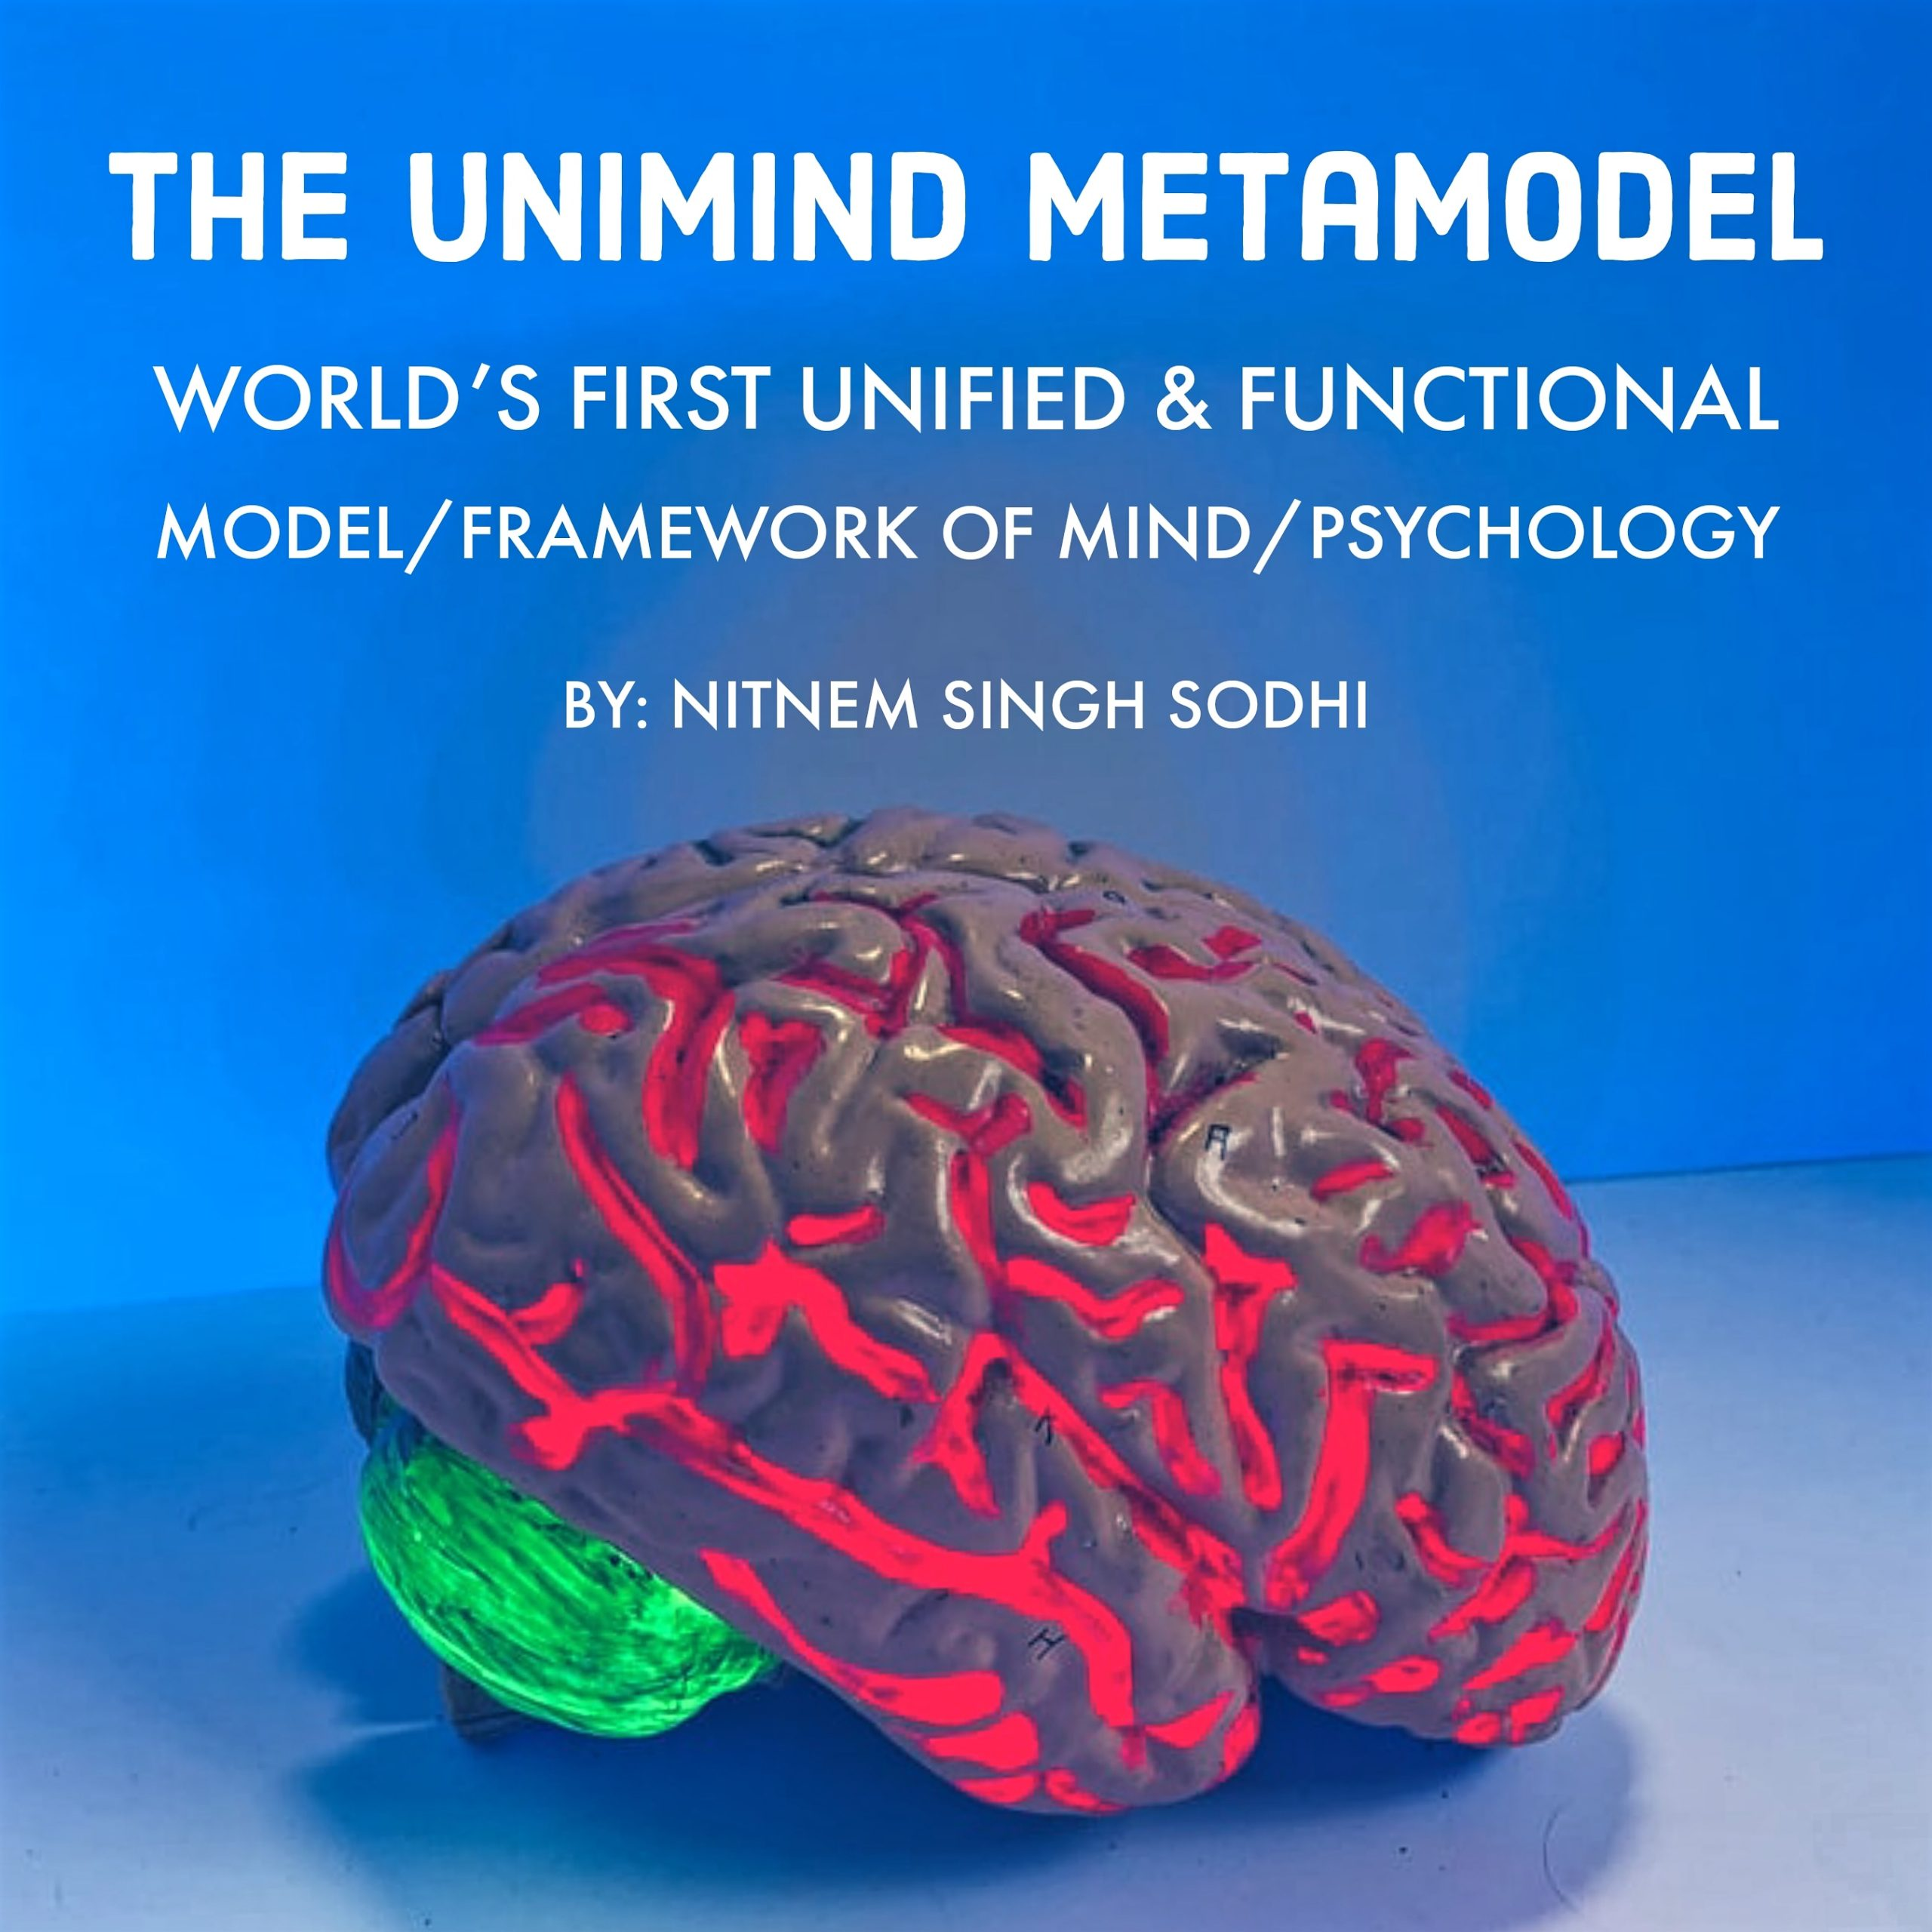 A revolution in field of psychology - The Unimind Metamodel